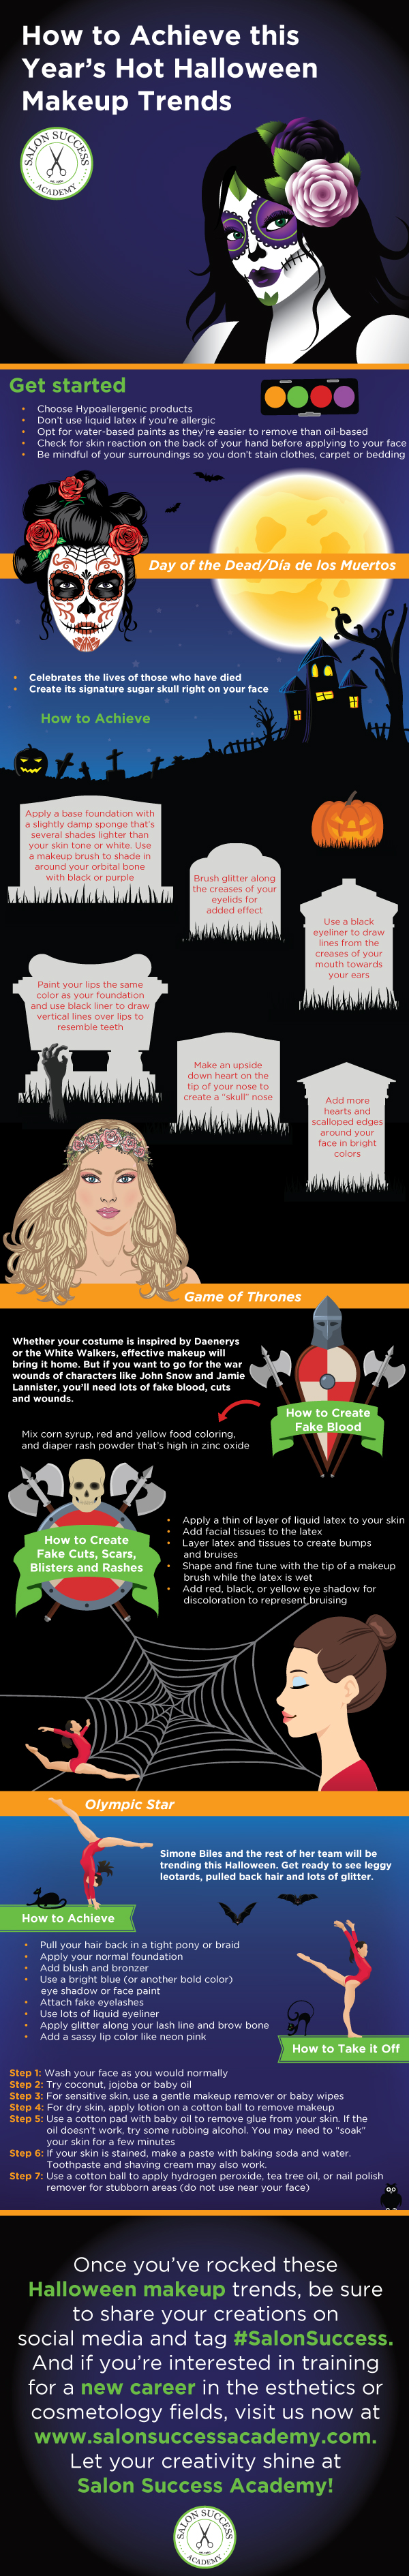 Salon Success Academy Halloween Infographic